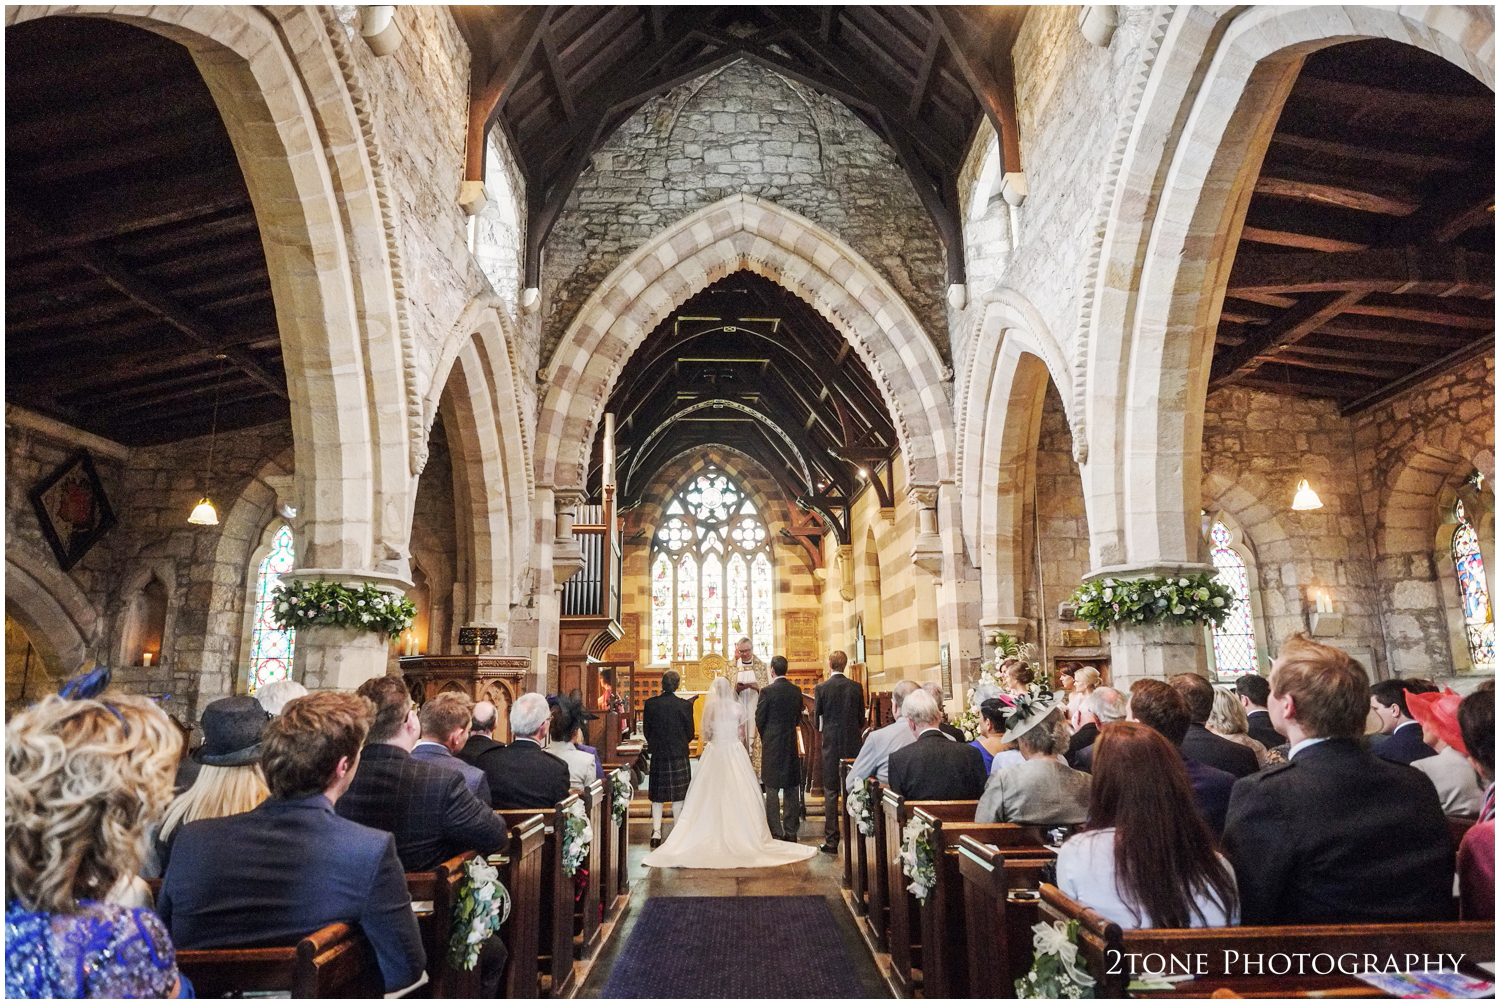 The Holy Trinity Church in Embleton, with it' arched ceilings, timber beams and flowers made to match the bride's bouquet made the perfect setting for a traditional wedding ceremony.